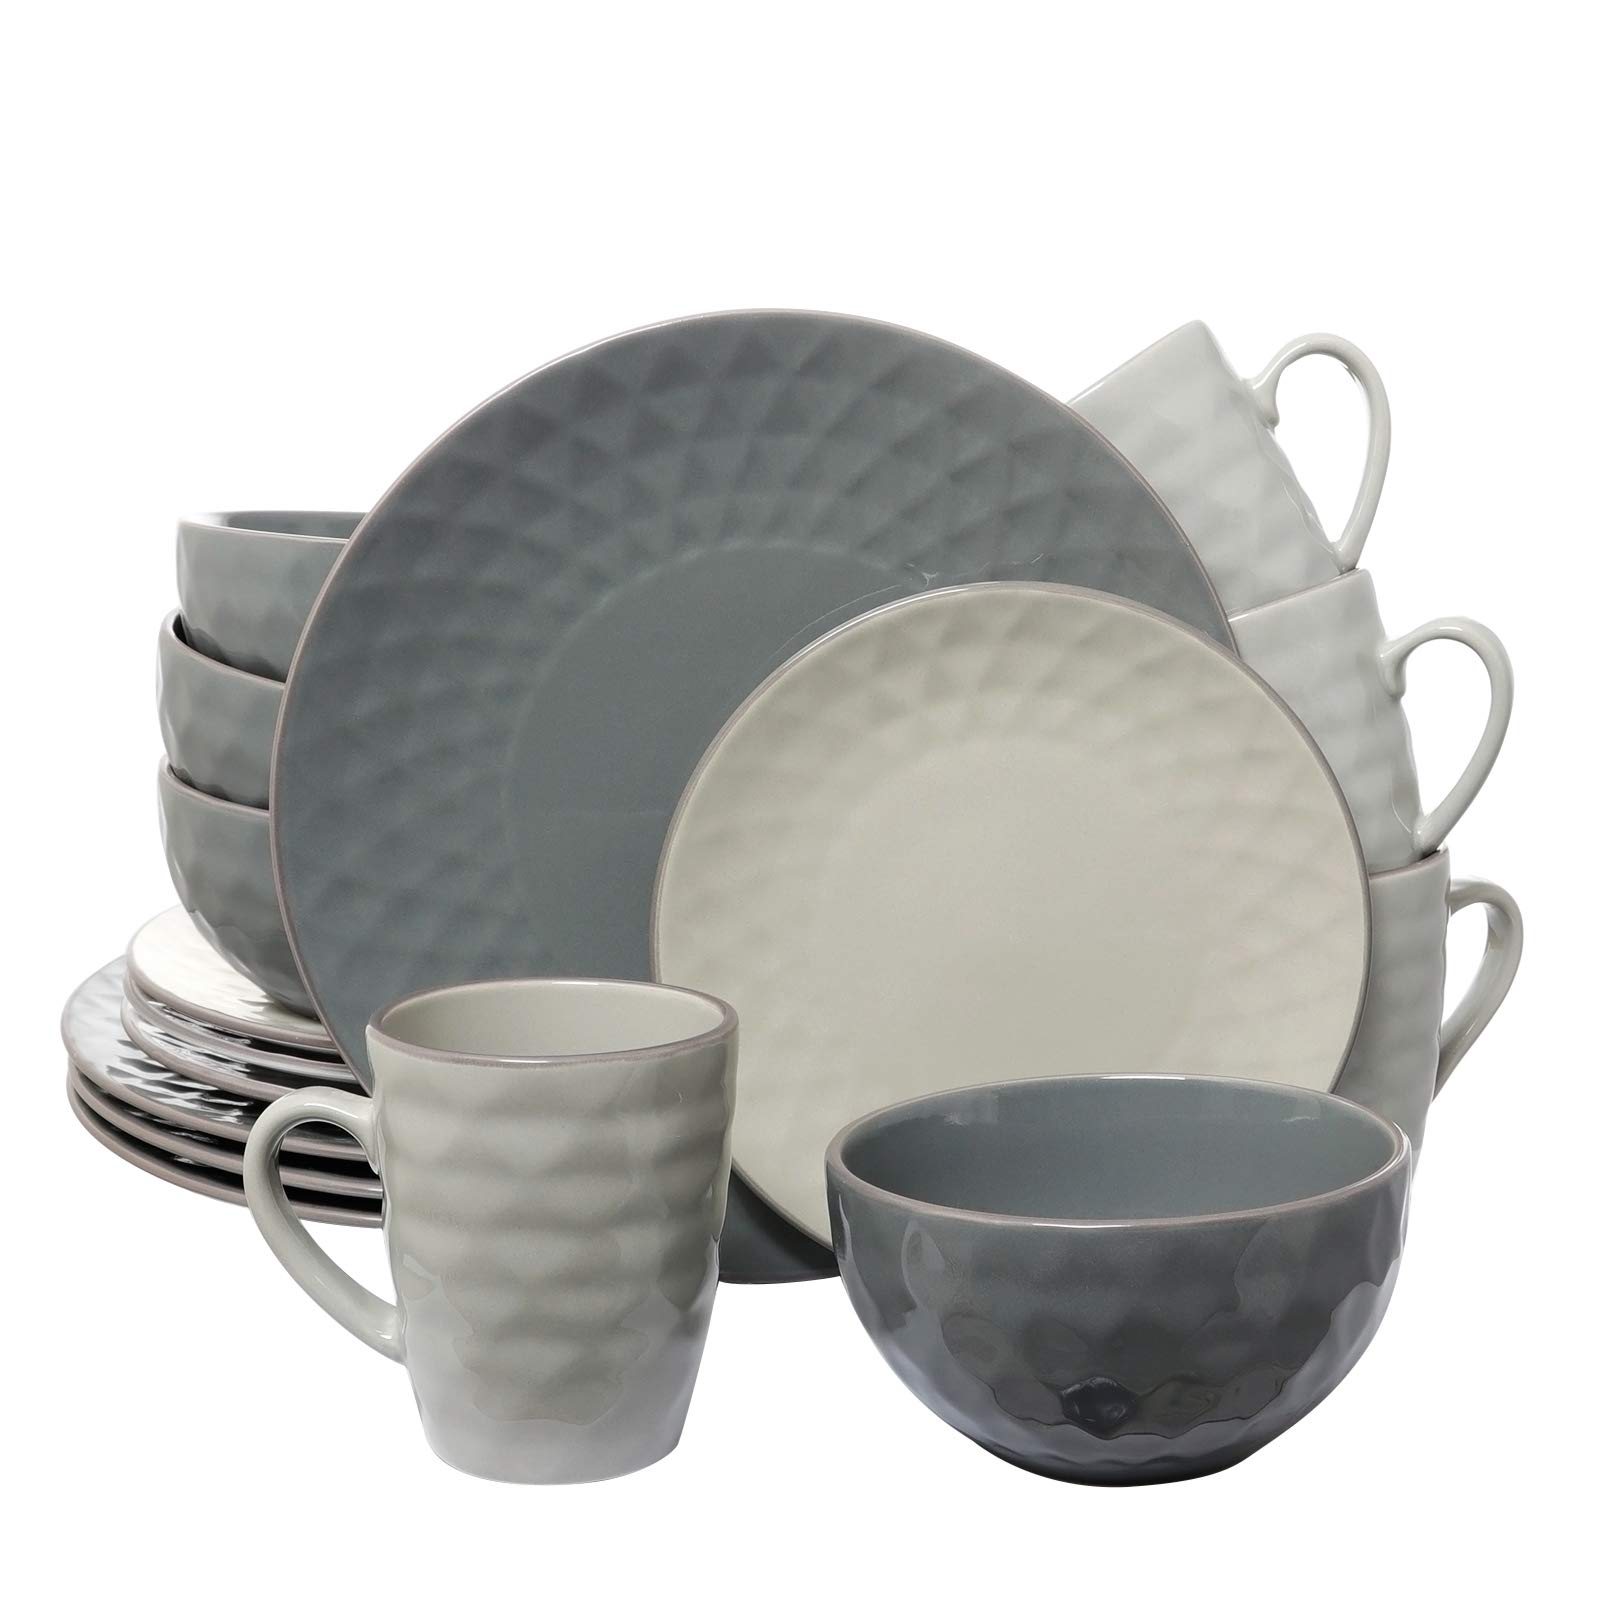 Elama 210109543M EL-TAHITIANPEARL Tahitian 16-Piece Dinnerware Slate and Stone Pearl with Setting for 4, 16pc by Elama (Image #1)